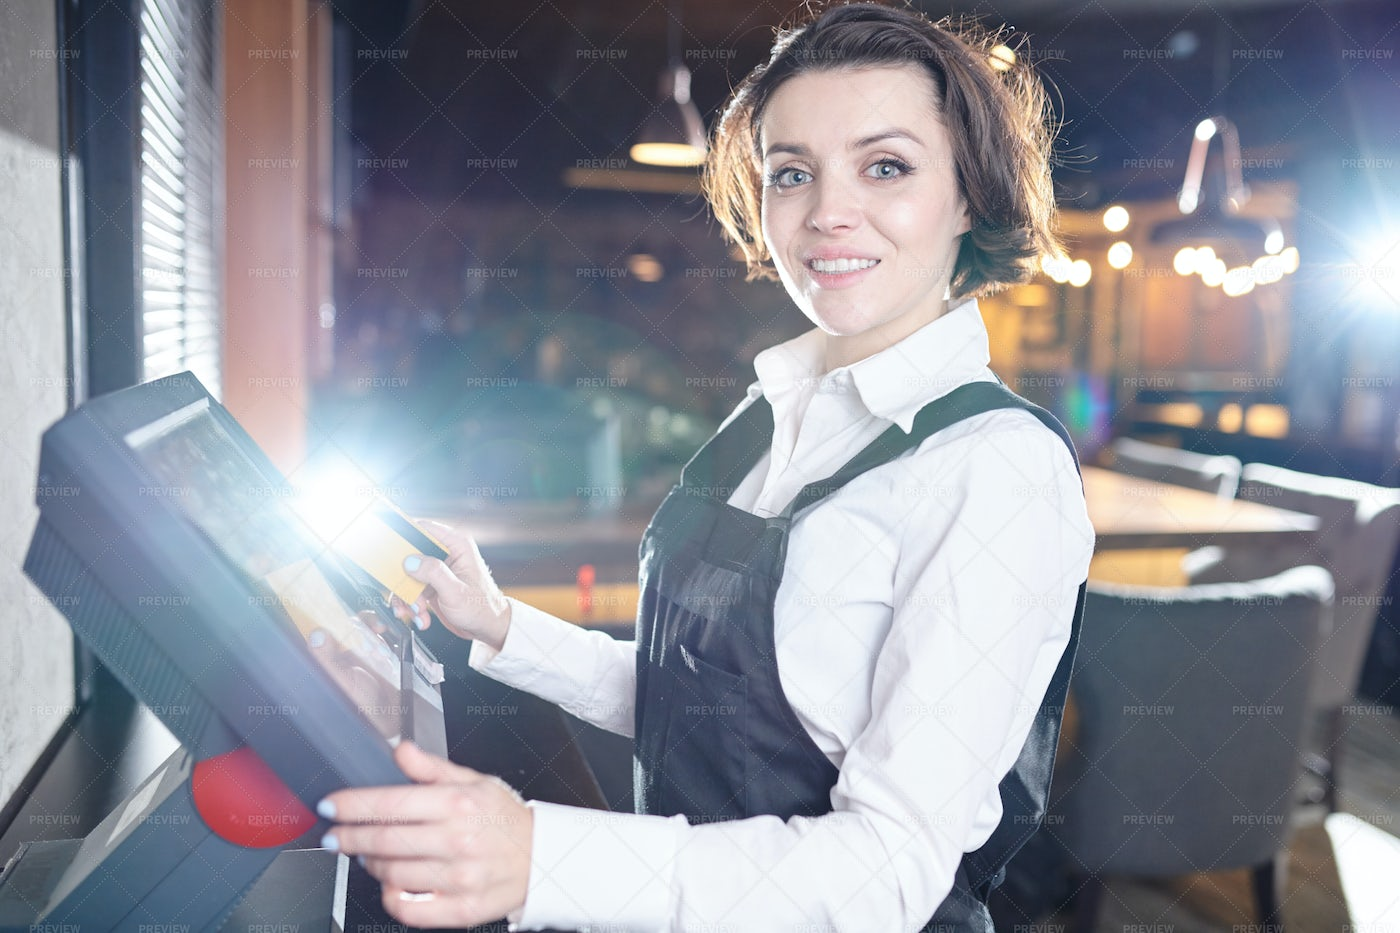 Cheerful Lady Using POS Terminal In...: Stock Photos